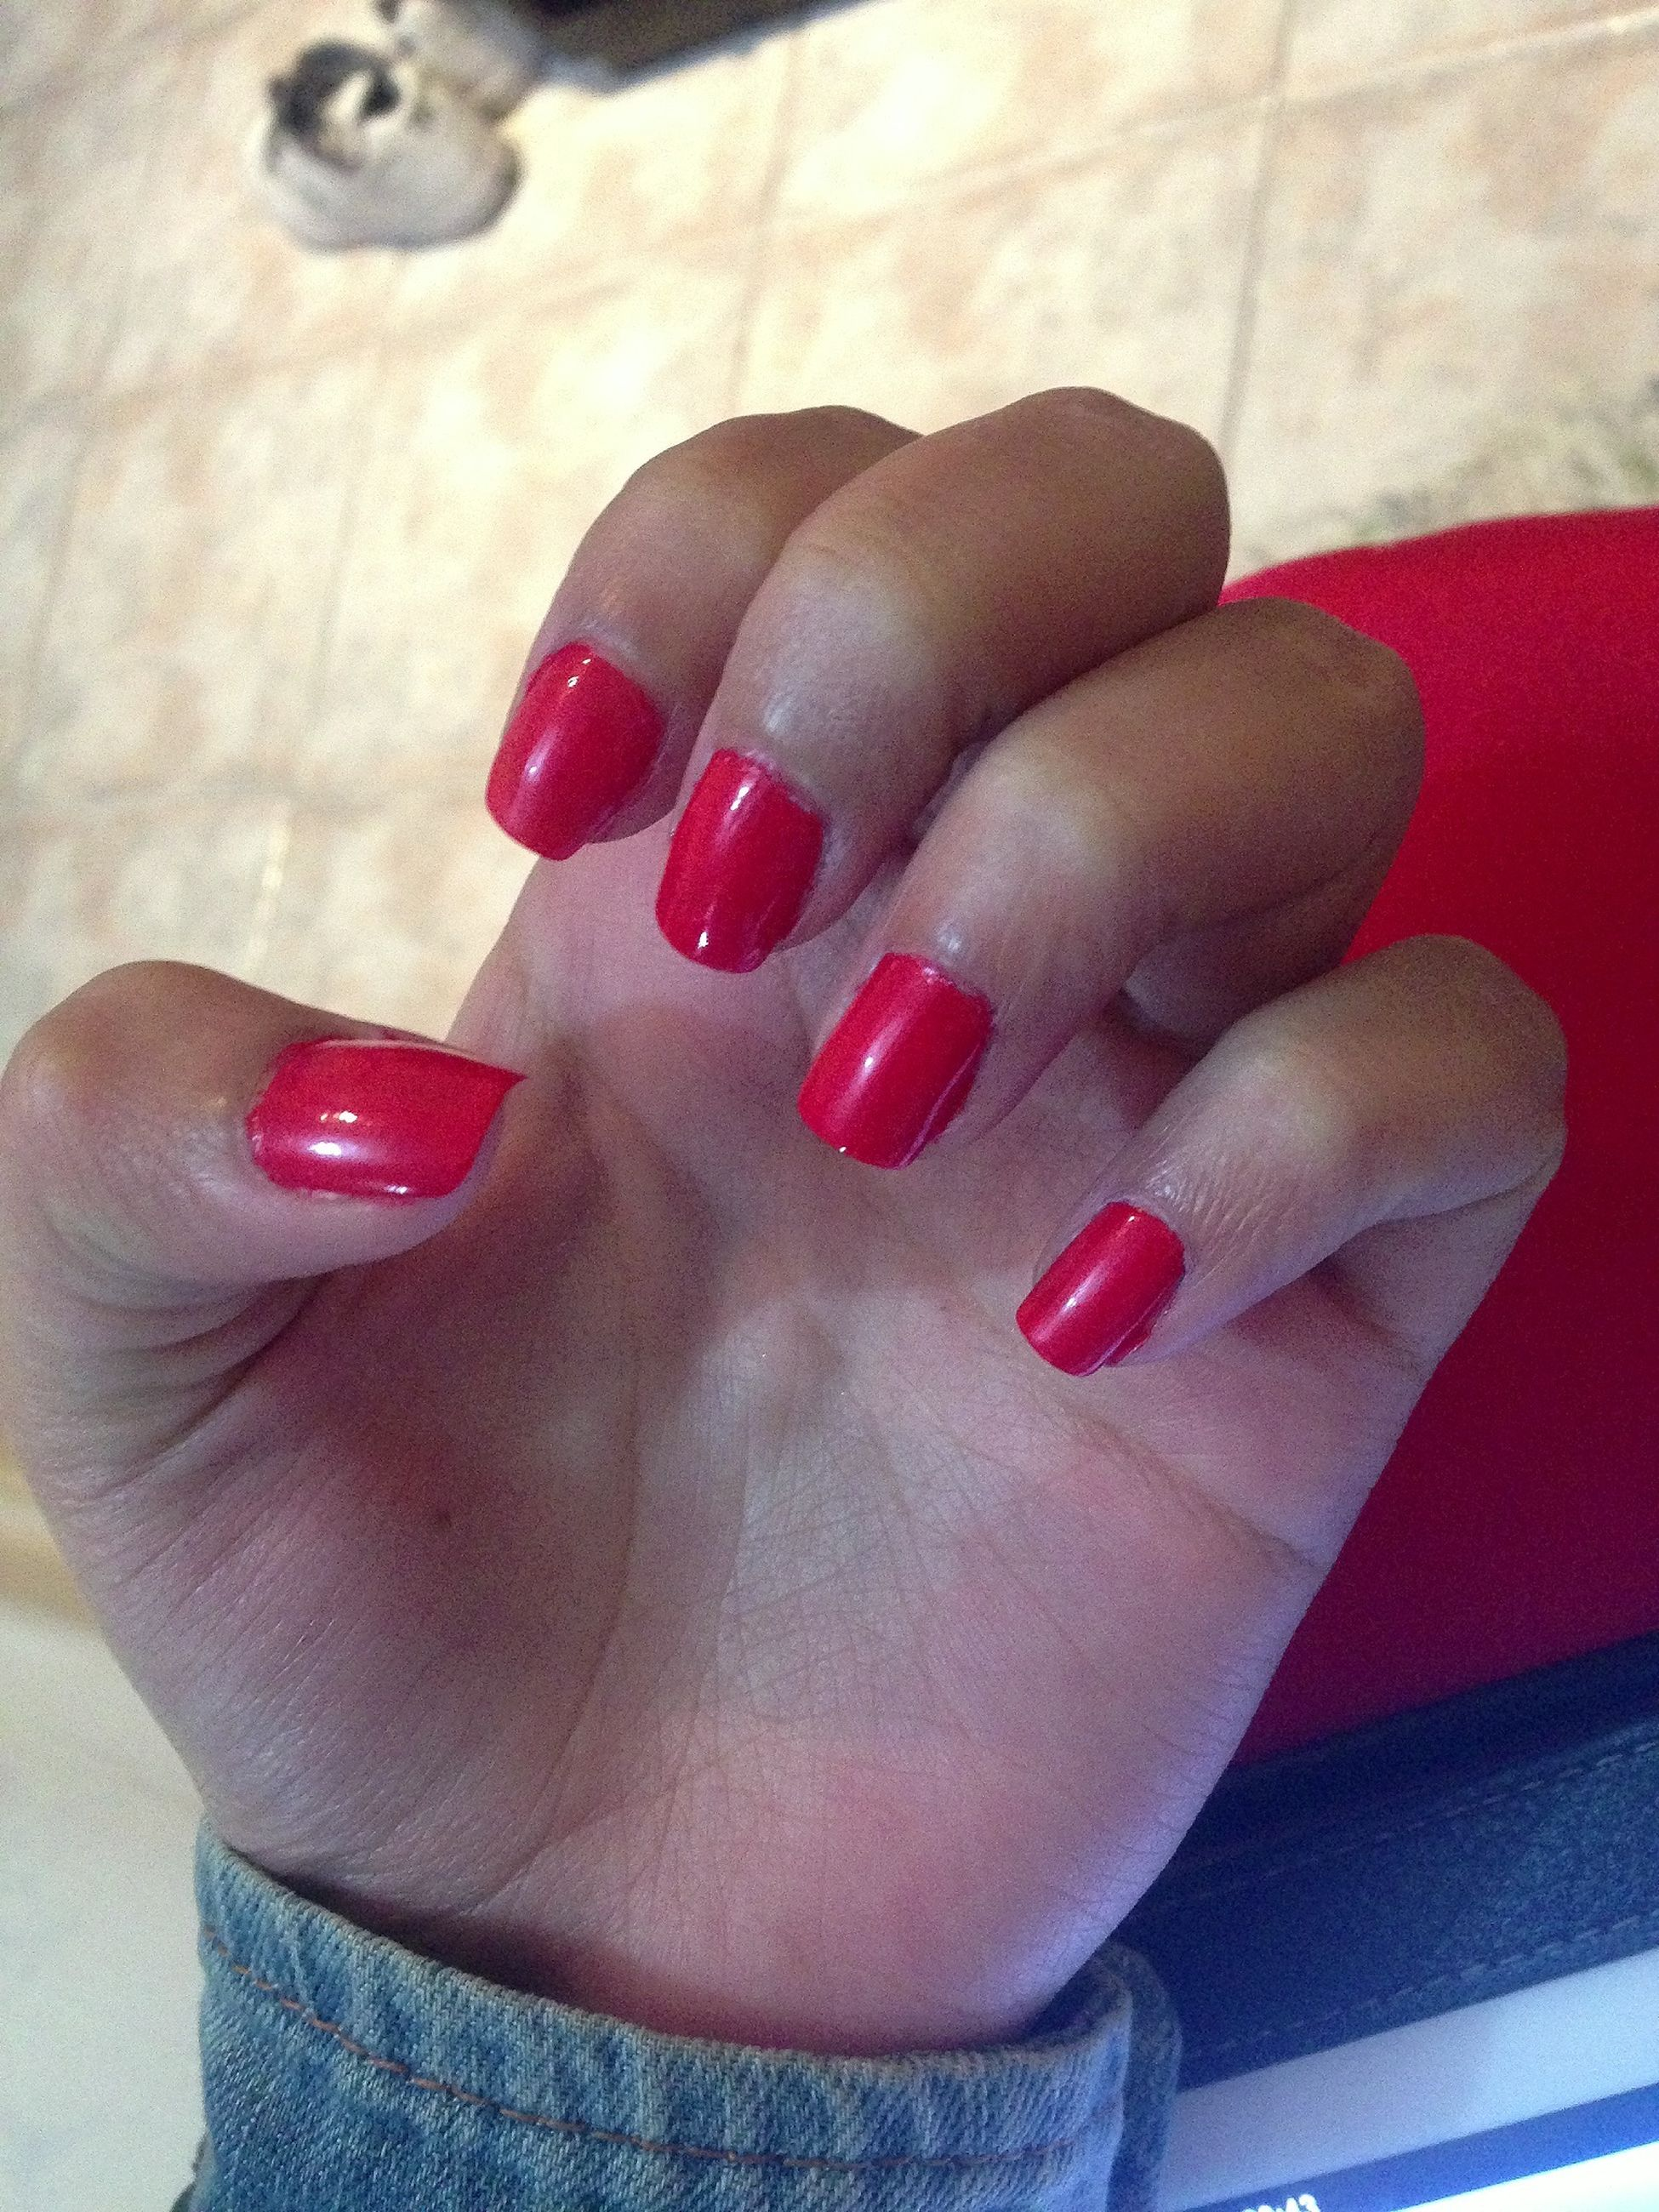 person, indoors, part of, holding, cropped, human finger, lifestyles, red, personal perspective, high angle view, nail polish, close-up, leisure activity, unrecognizable person, home interior